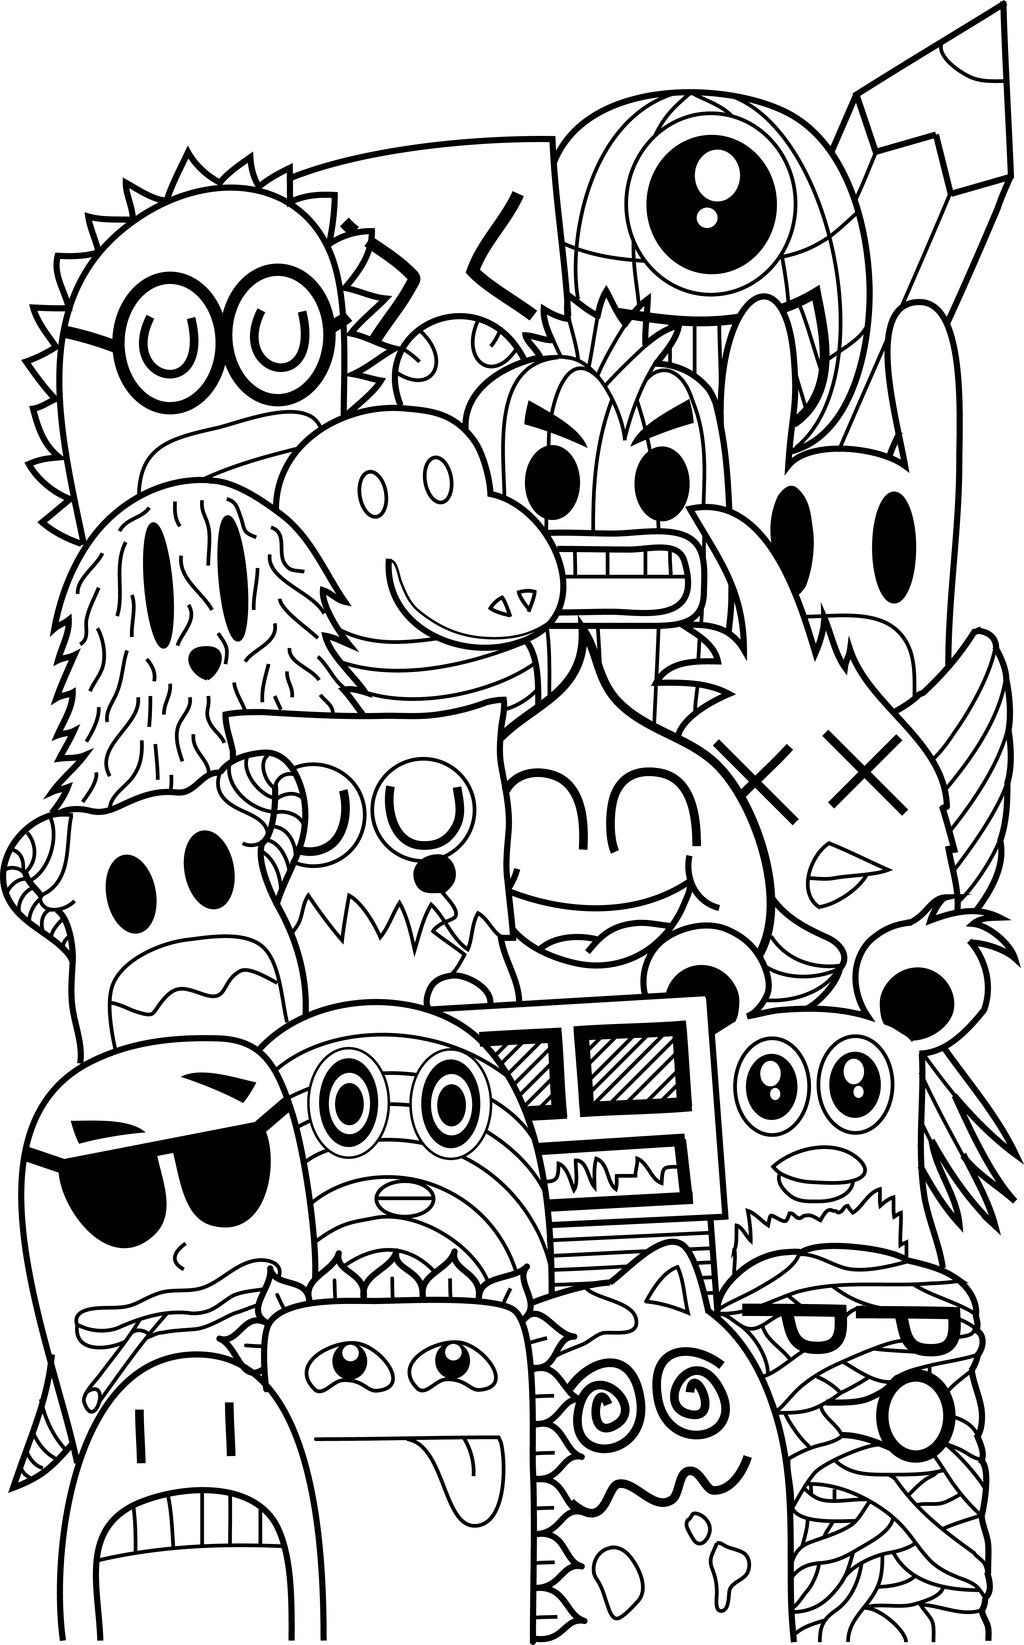 doodle - Google Search | Adult Coloring Pages | Pinterest ...